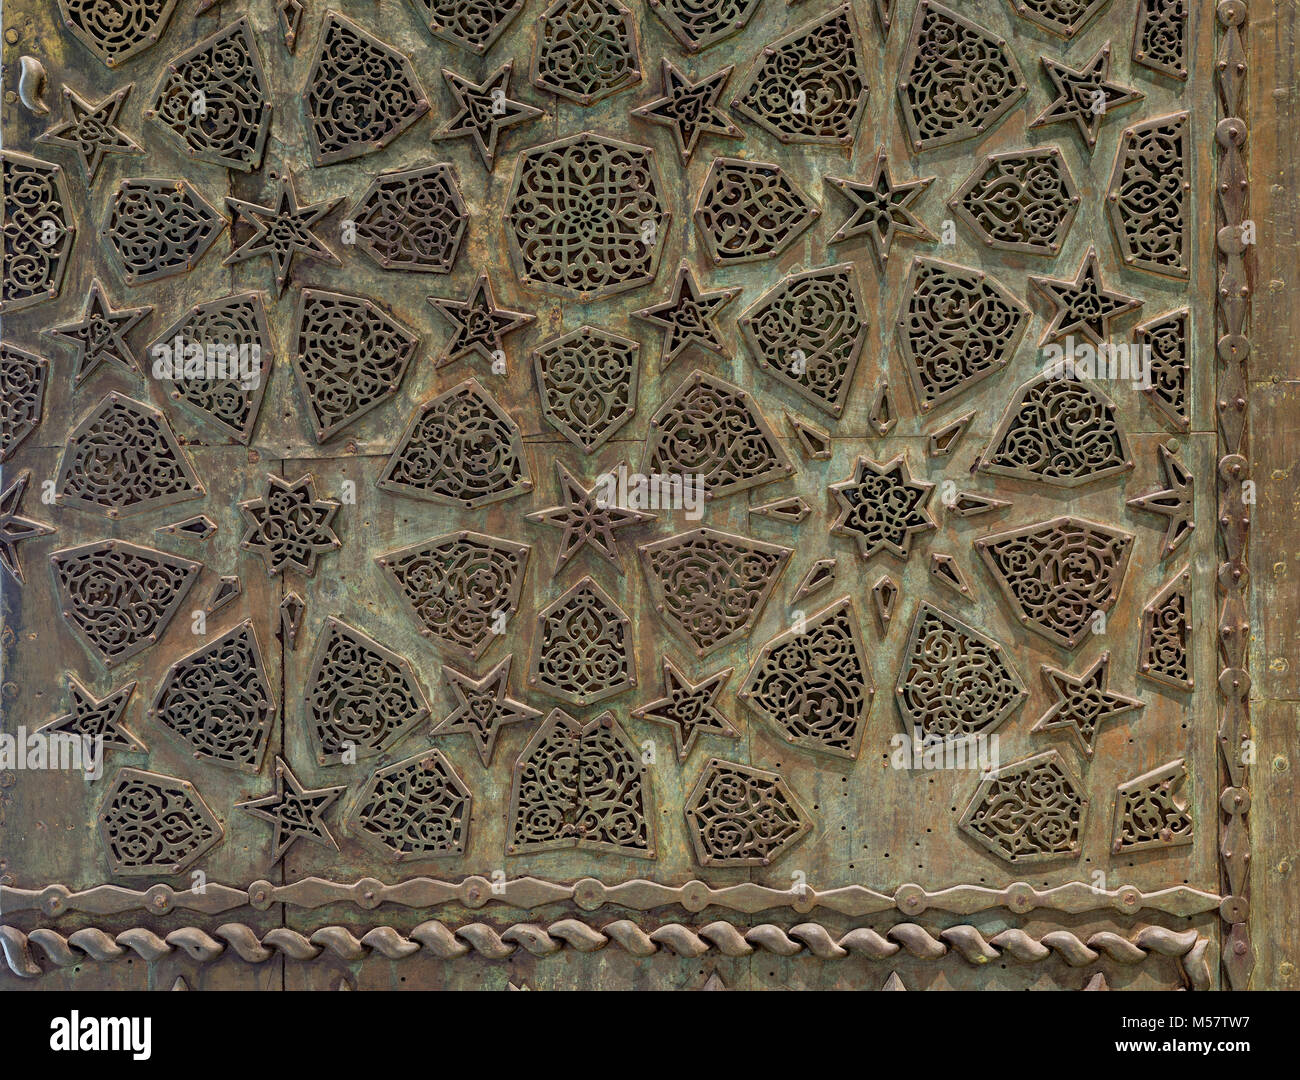 Bronze-plate ornaments of an aged door, Cairo, Egypt - Stock Image